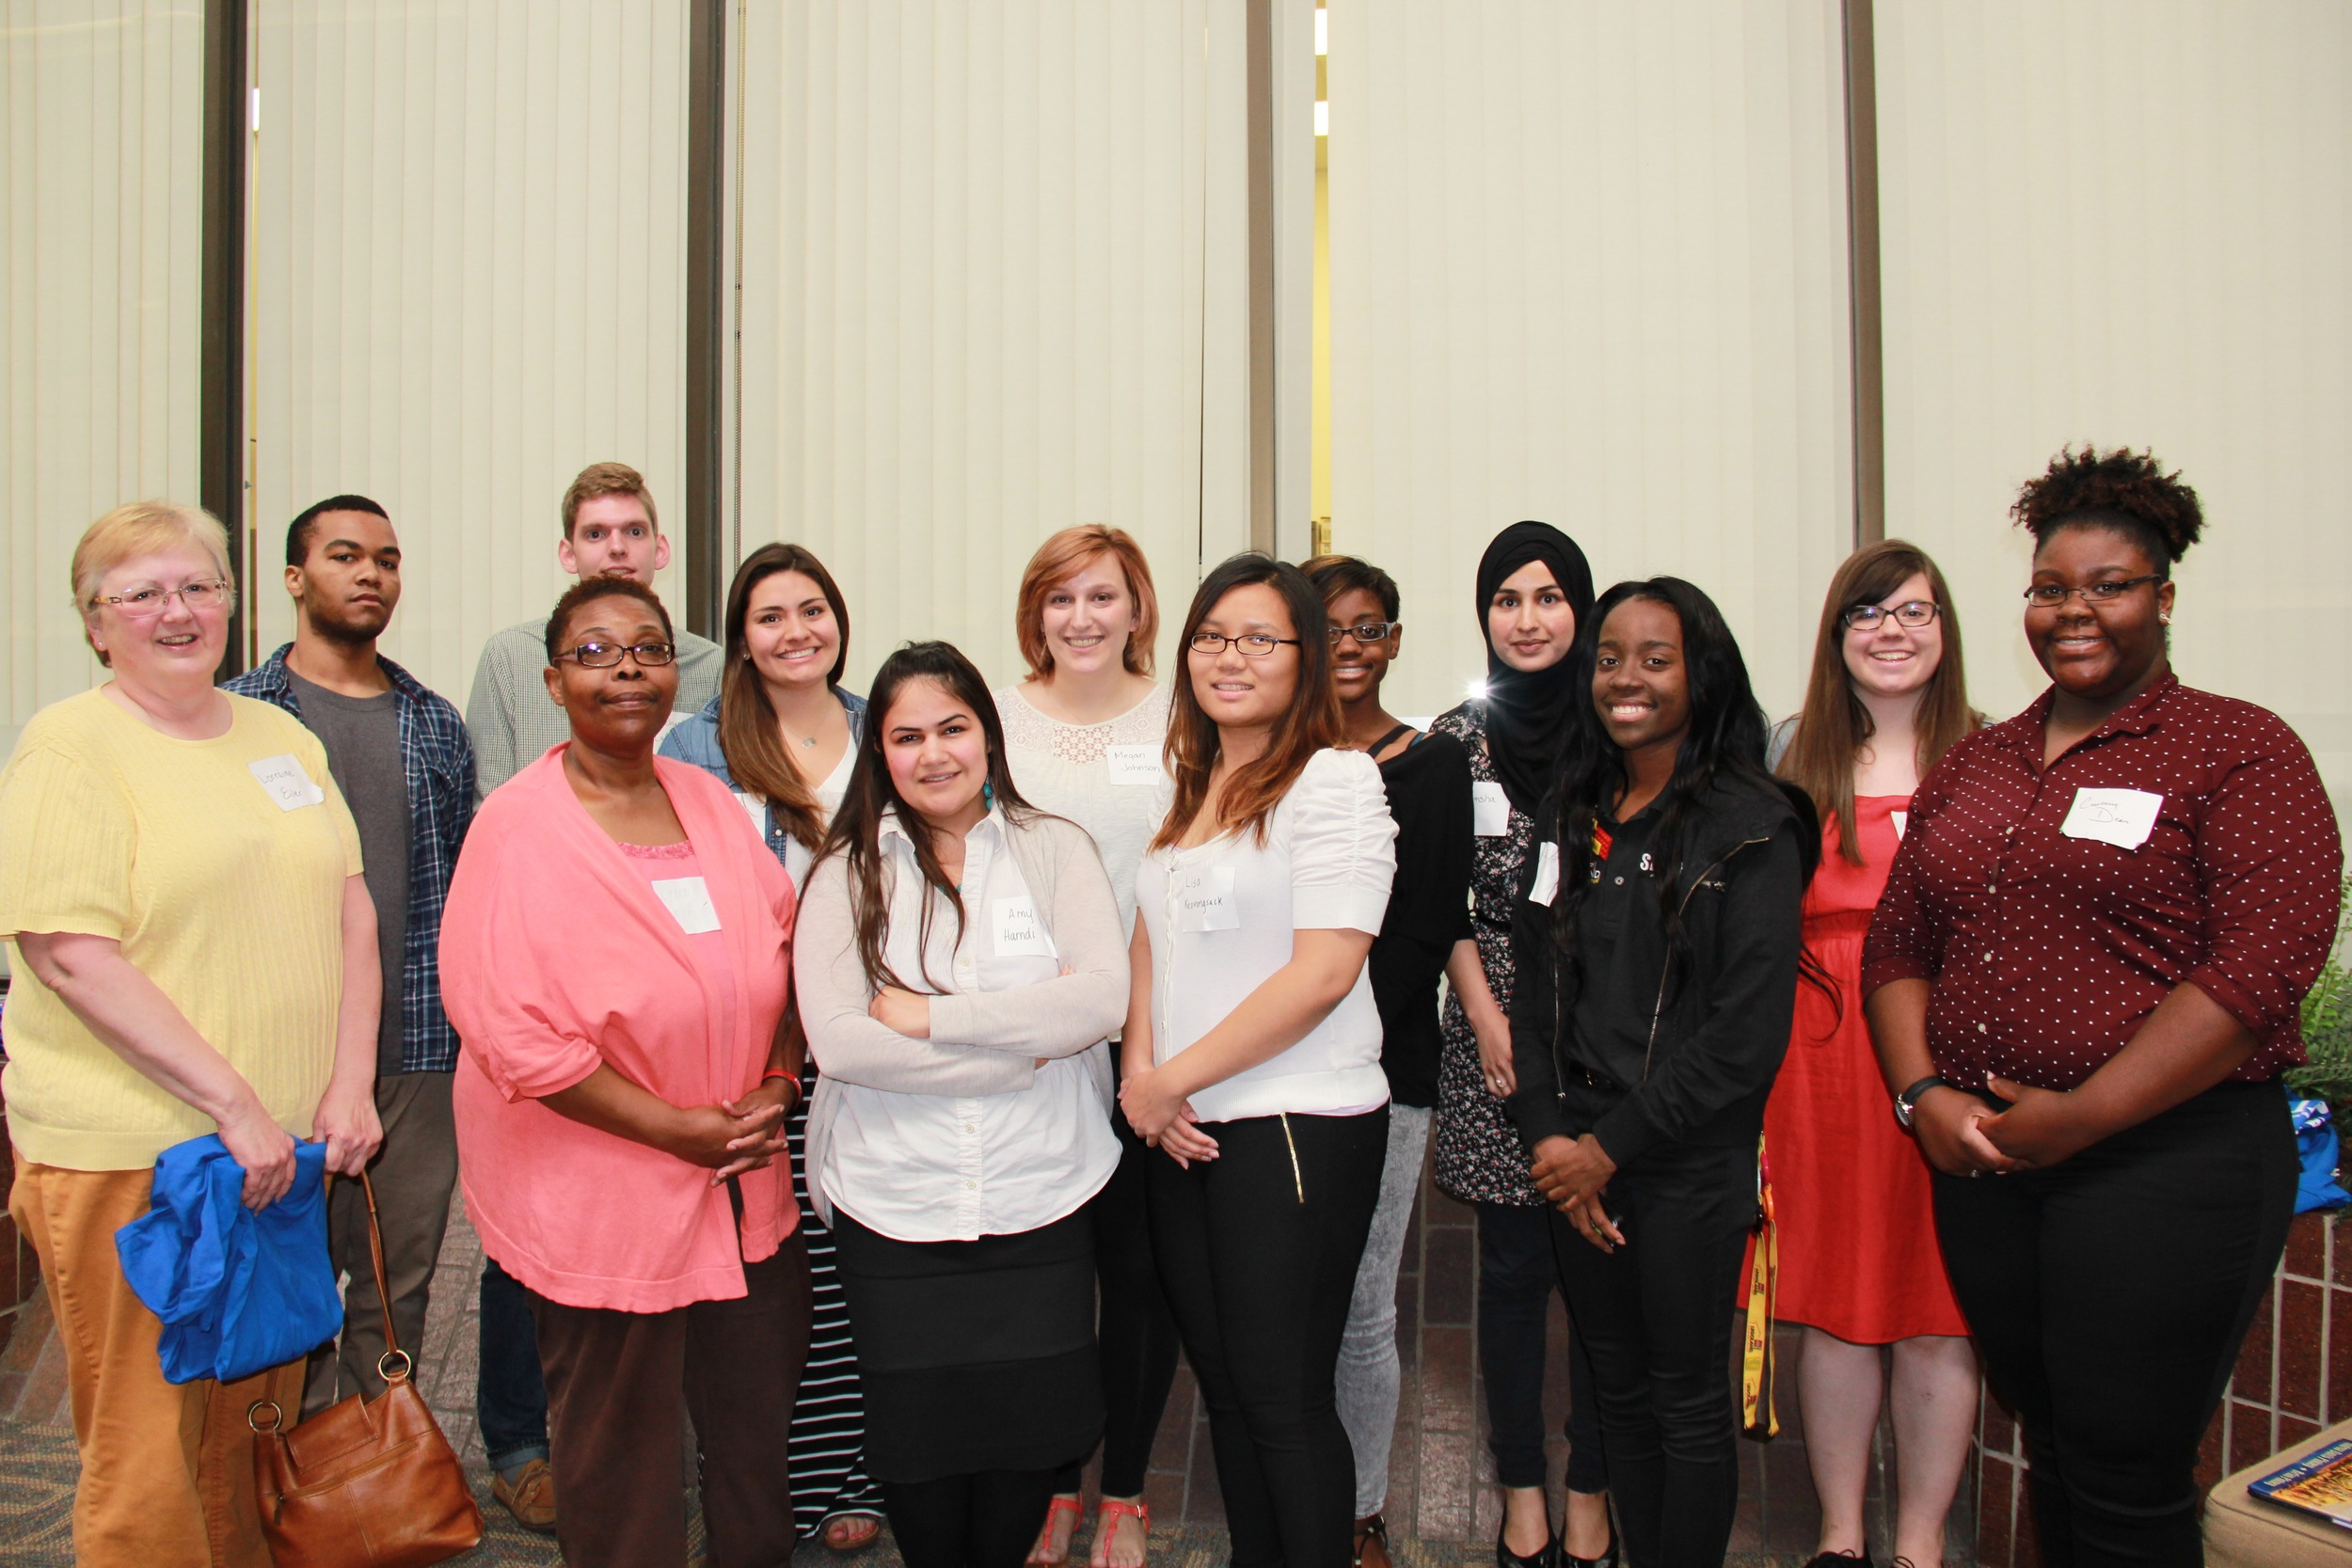 LINC AmeriCorps VISTA volunteers. VISTAs will be working with LINC during summer school from June 1-July 10.